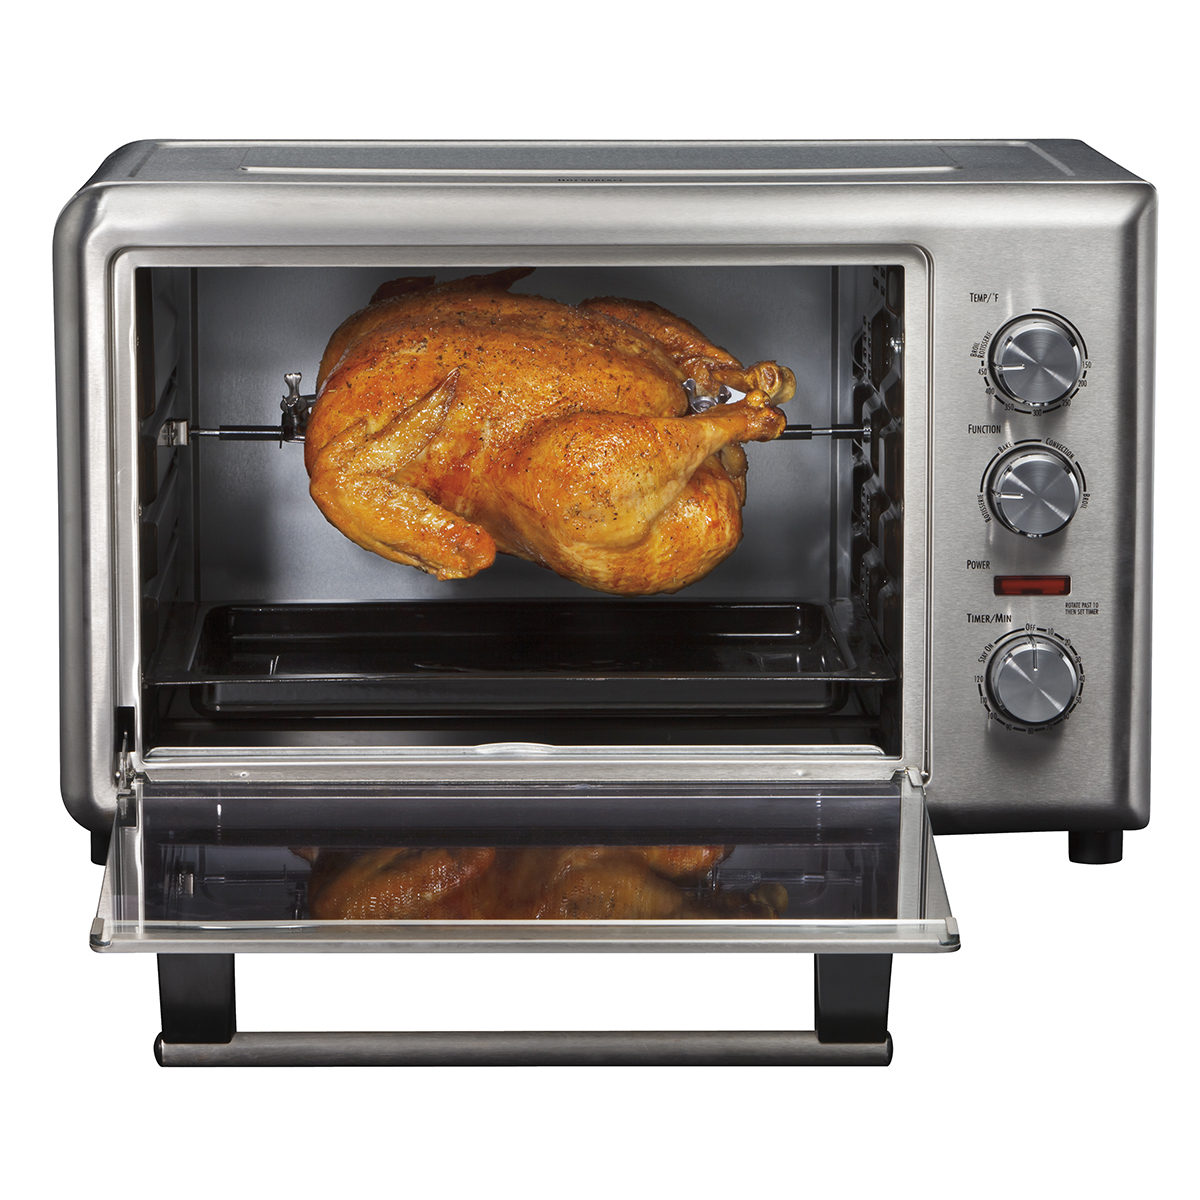 Countertop Oven with Convection  & Rotisserie (31103)